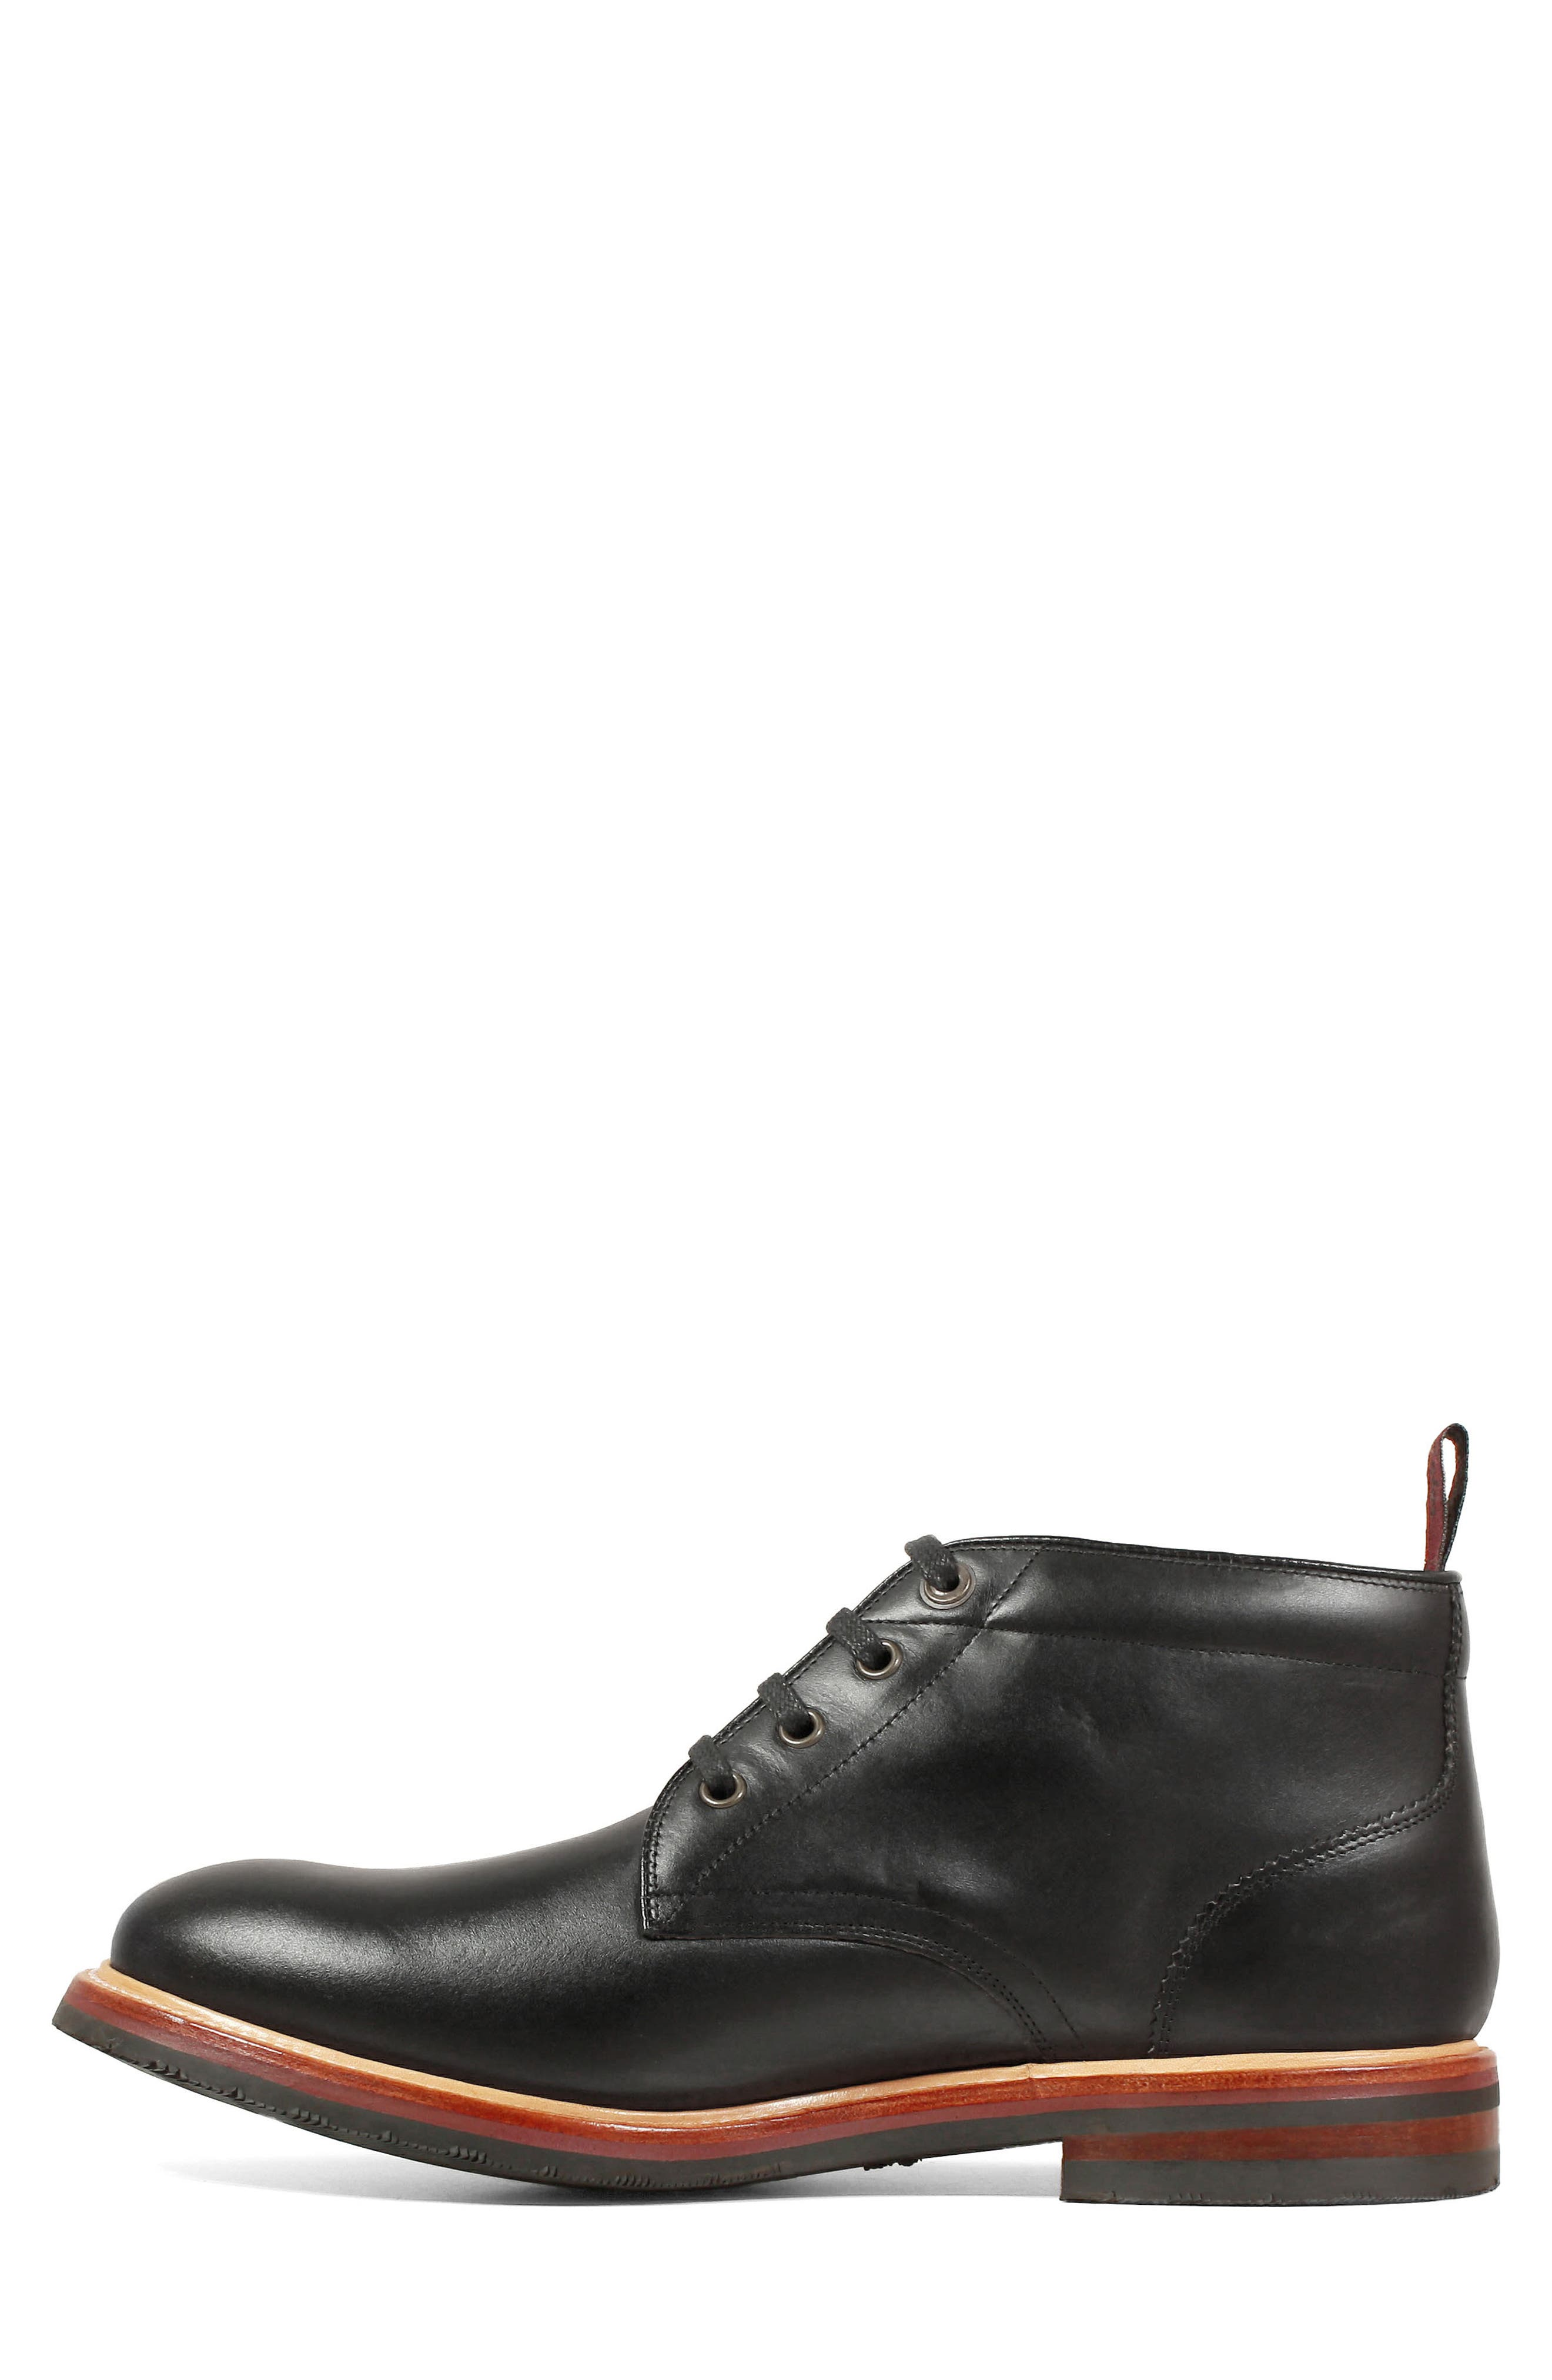 FLORSHEIM, Foundry Leather Boot, Alternate thumbnail 7, color, BLACK LEATHER